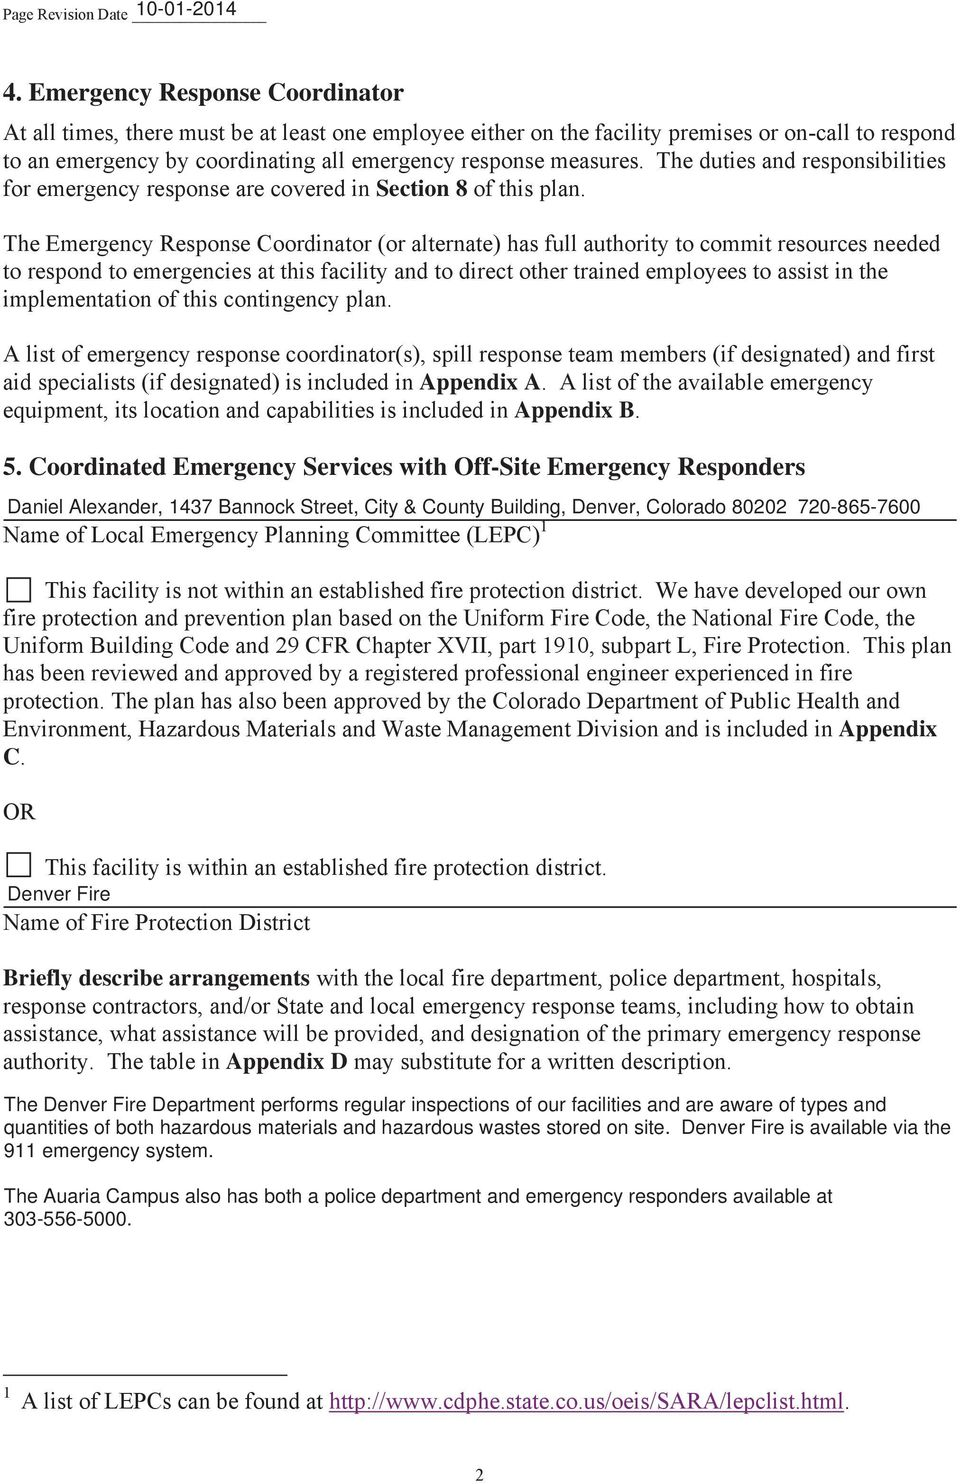 720-865-7600 Appendix C Denver Fire Briefly describe arrangements Appendix D The Denver Fire Department performs regular inspections of our facilities and are